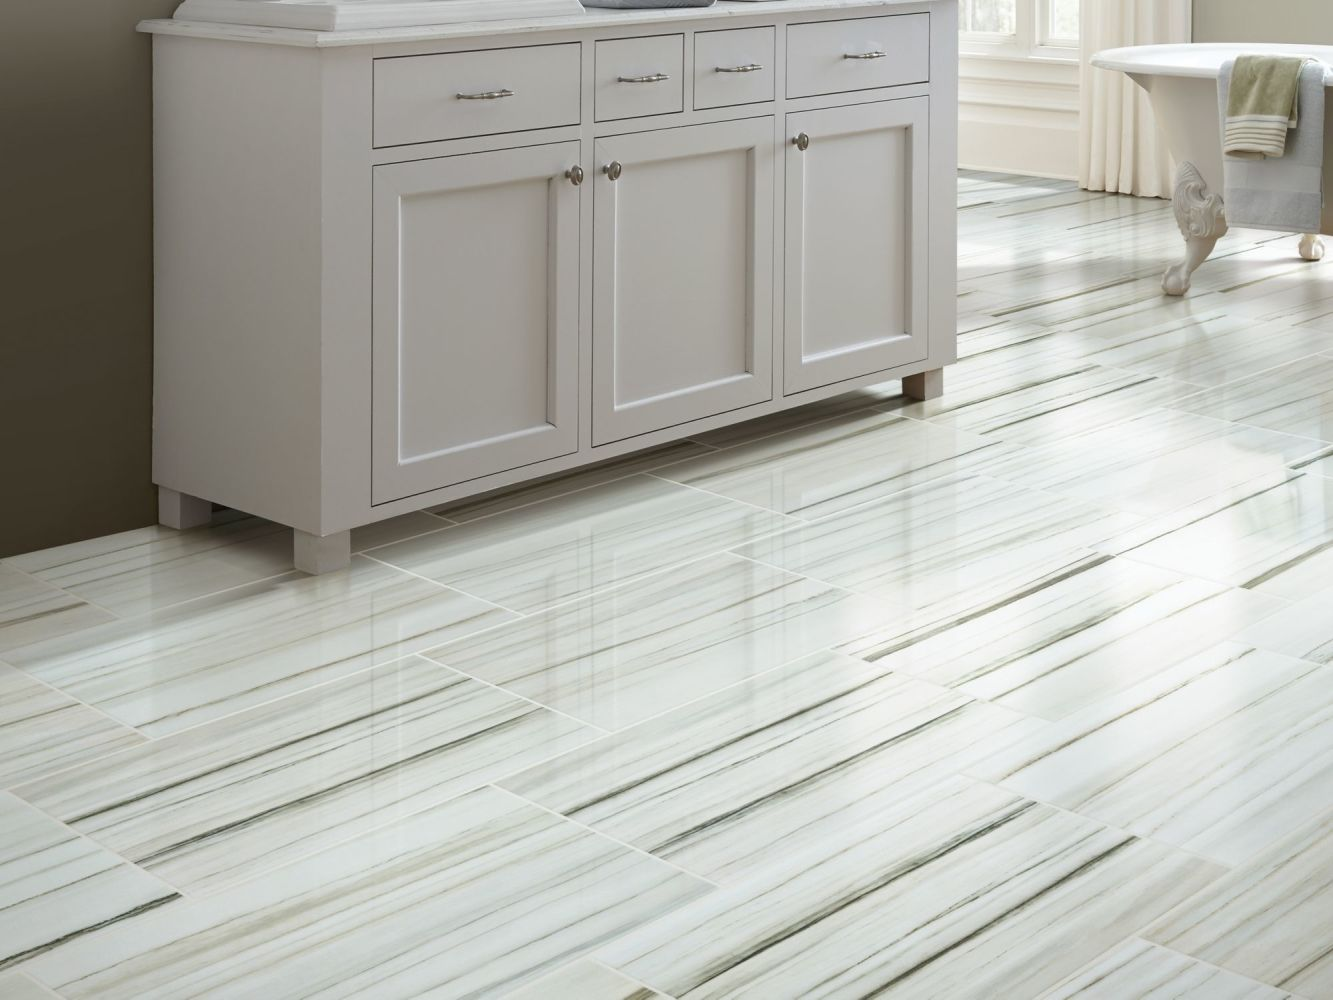 Shaw Floors Home Fn Gold Ceramic Marvel 12×24 Polish Zebrino 00155_TG10C